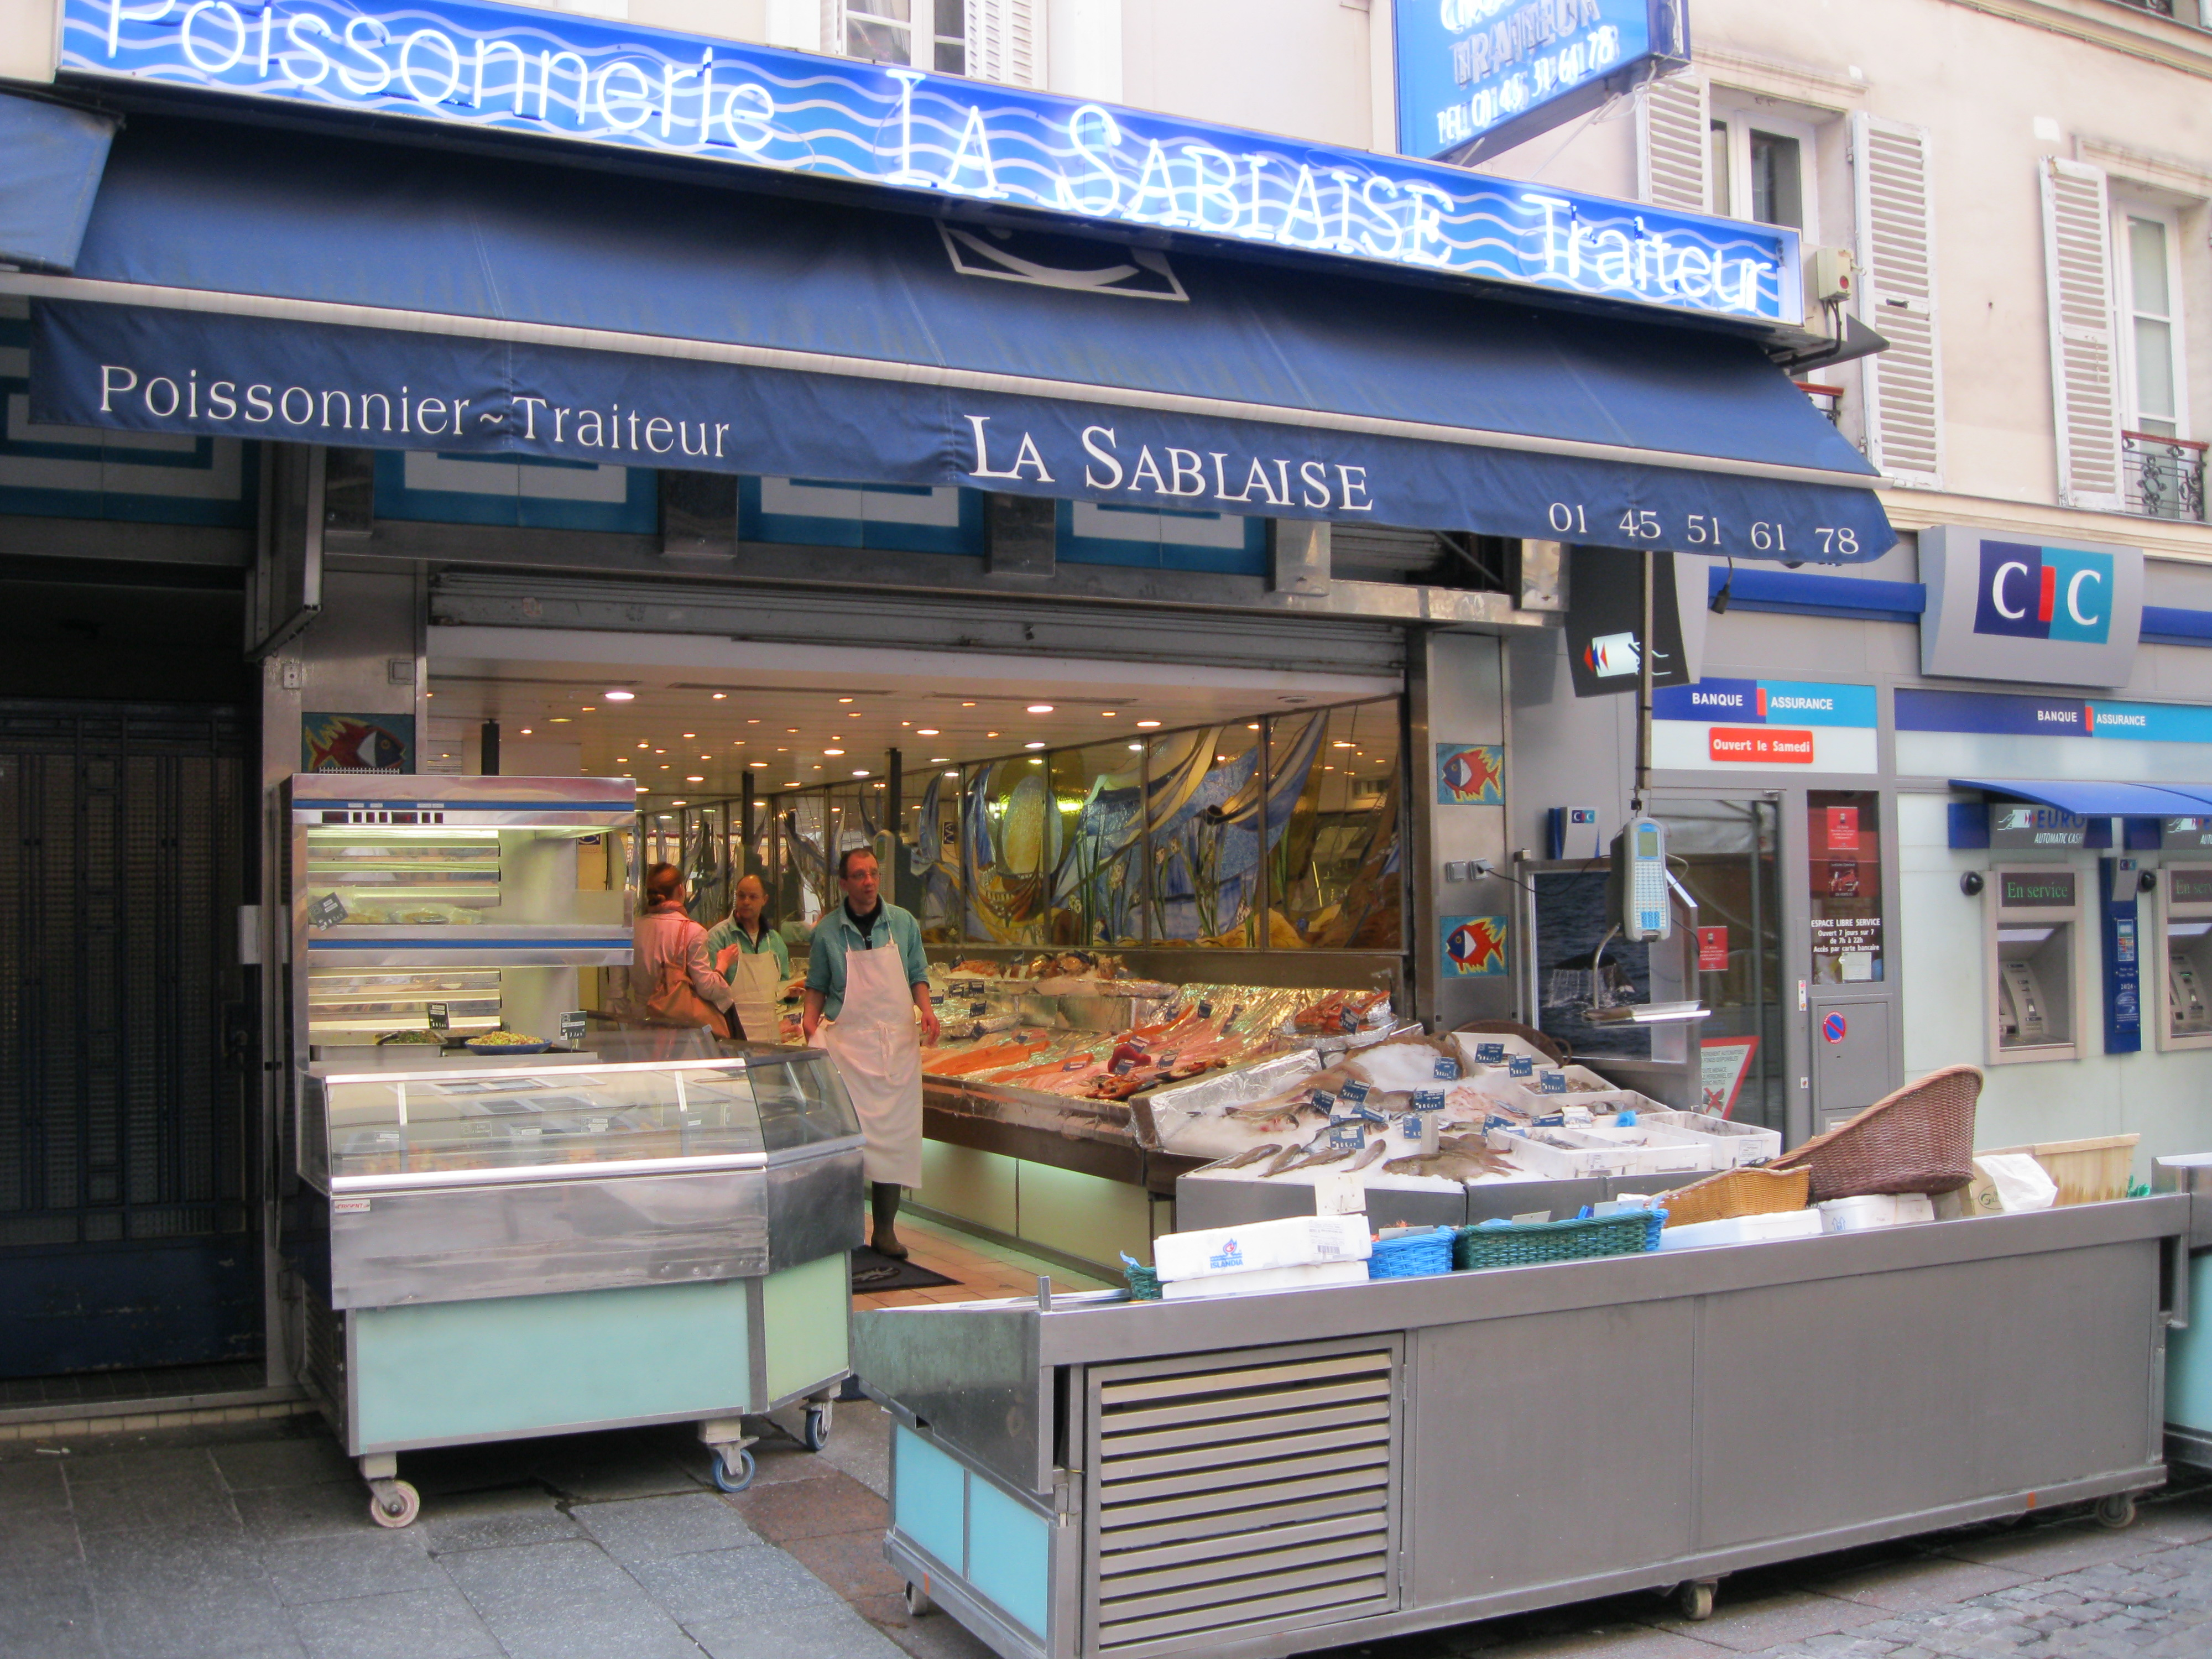 Shopping rue cler the very french way to eat in paris for The fish store